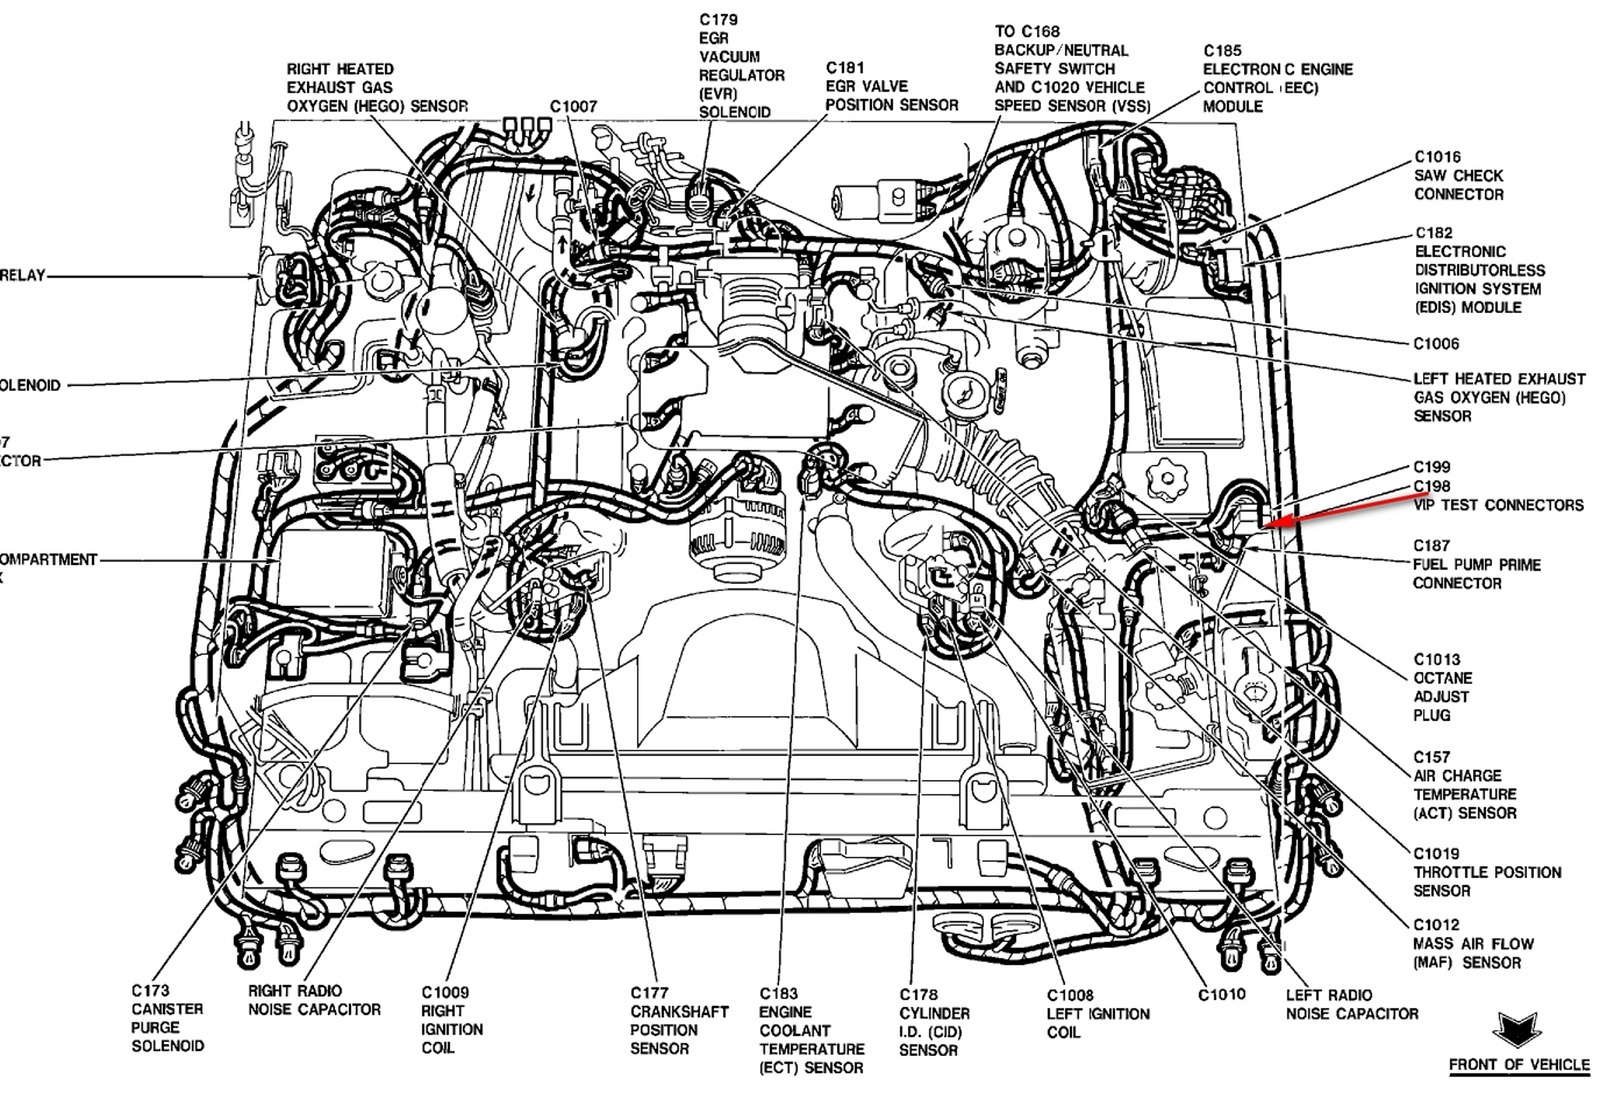 2002 Chevy Malibu Engine Parts Diagram as well 2fhhf Replace Fuel Filter 2000 Chevy Tracker together with Chevy Silverado Jack Location furthermore Hummer H3 Fuel Filter Location furthermore Hummer H2 Fuel Filter. on 2007 trailblazer cabin filter location